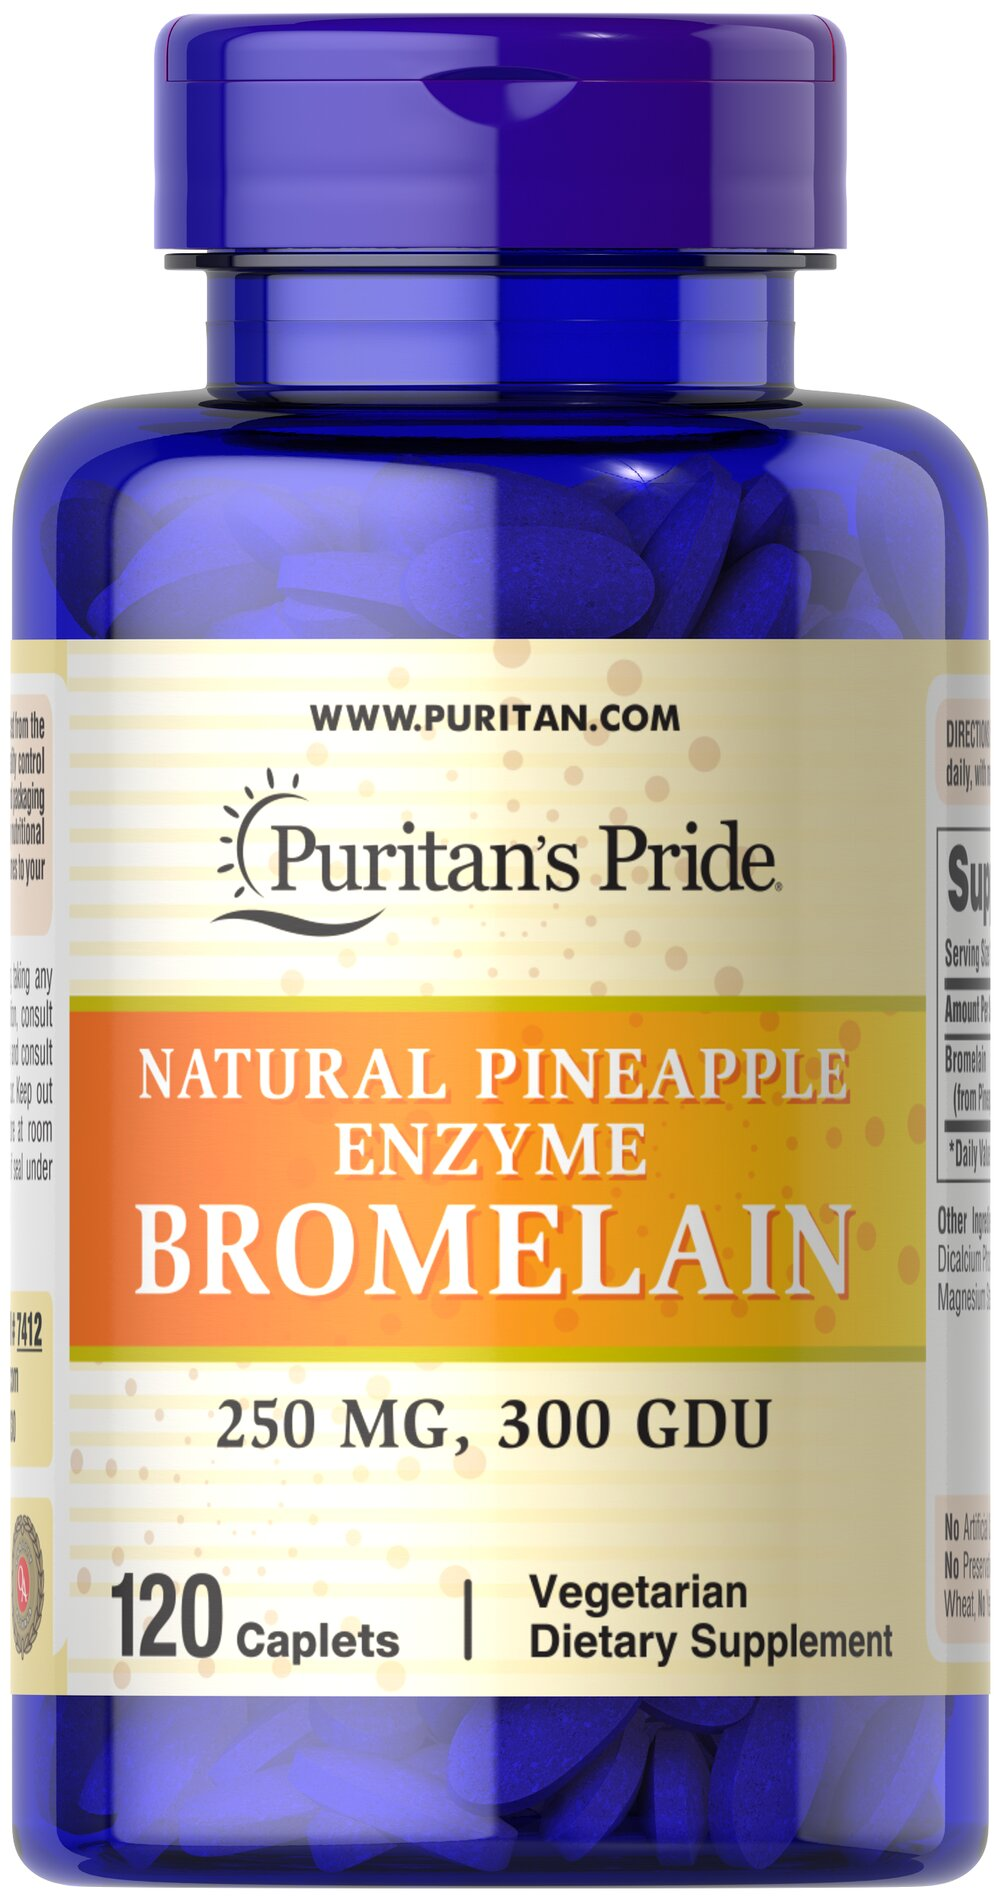 Bromelain 500 mg 300 GDU/gram <p>Derived from the stems of pineapple, Bromelain is a natural digestive enzyme.** </p><p>As a natural enzyme, Bromelain helps digest protein in the gastrointestinal tract.** </p><p>In general, enzymes break down the nutritional components of proteins, fats and carbohydrates, making these nutrients available for the body's energy needs, cell growth and other vital functions.**</p> 120 Tablets 500 mg $22.99